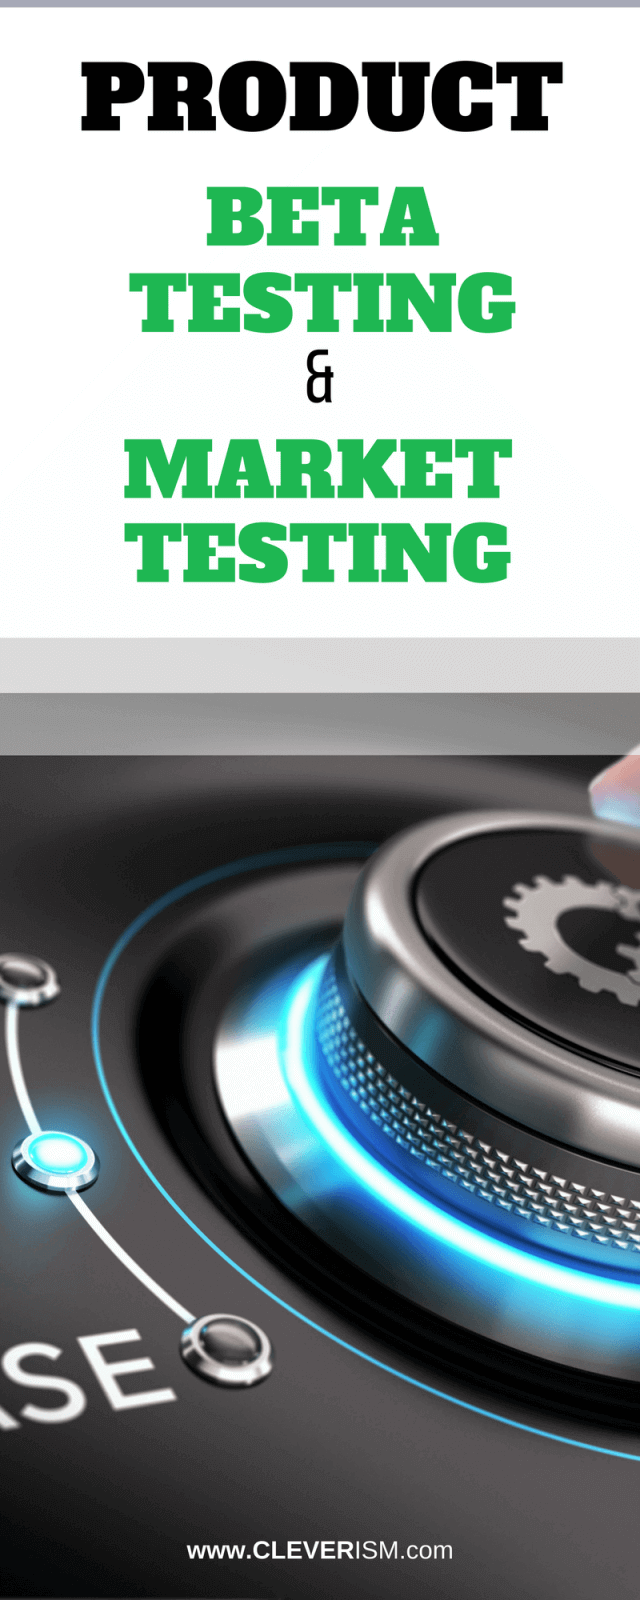 Product Beta Testing & Market Testing | Cleverism